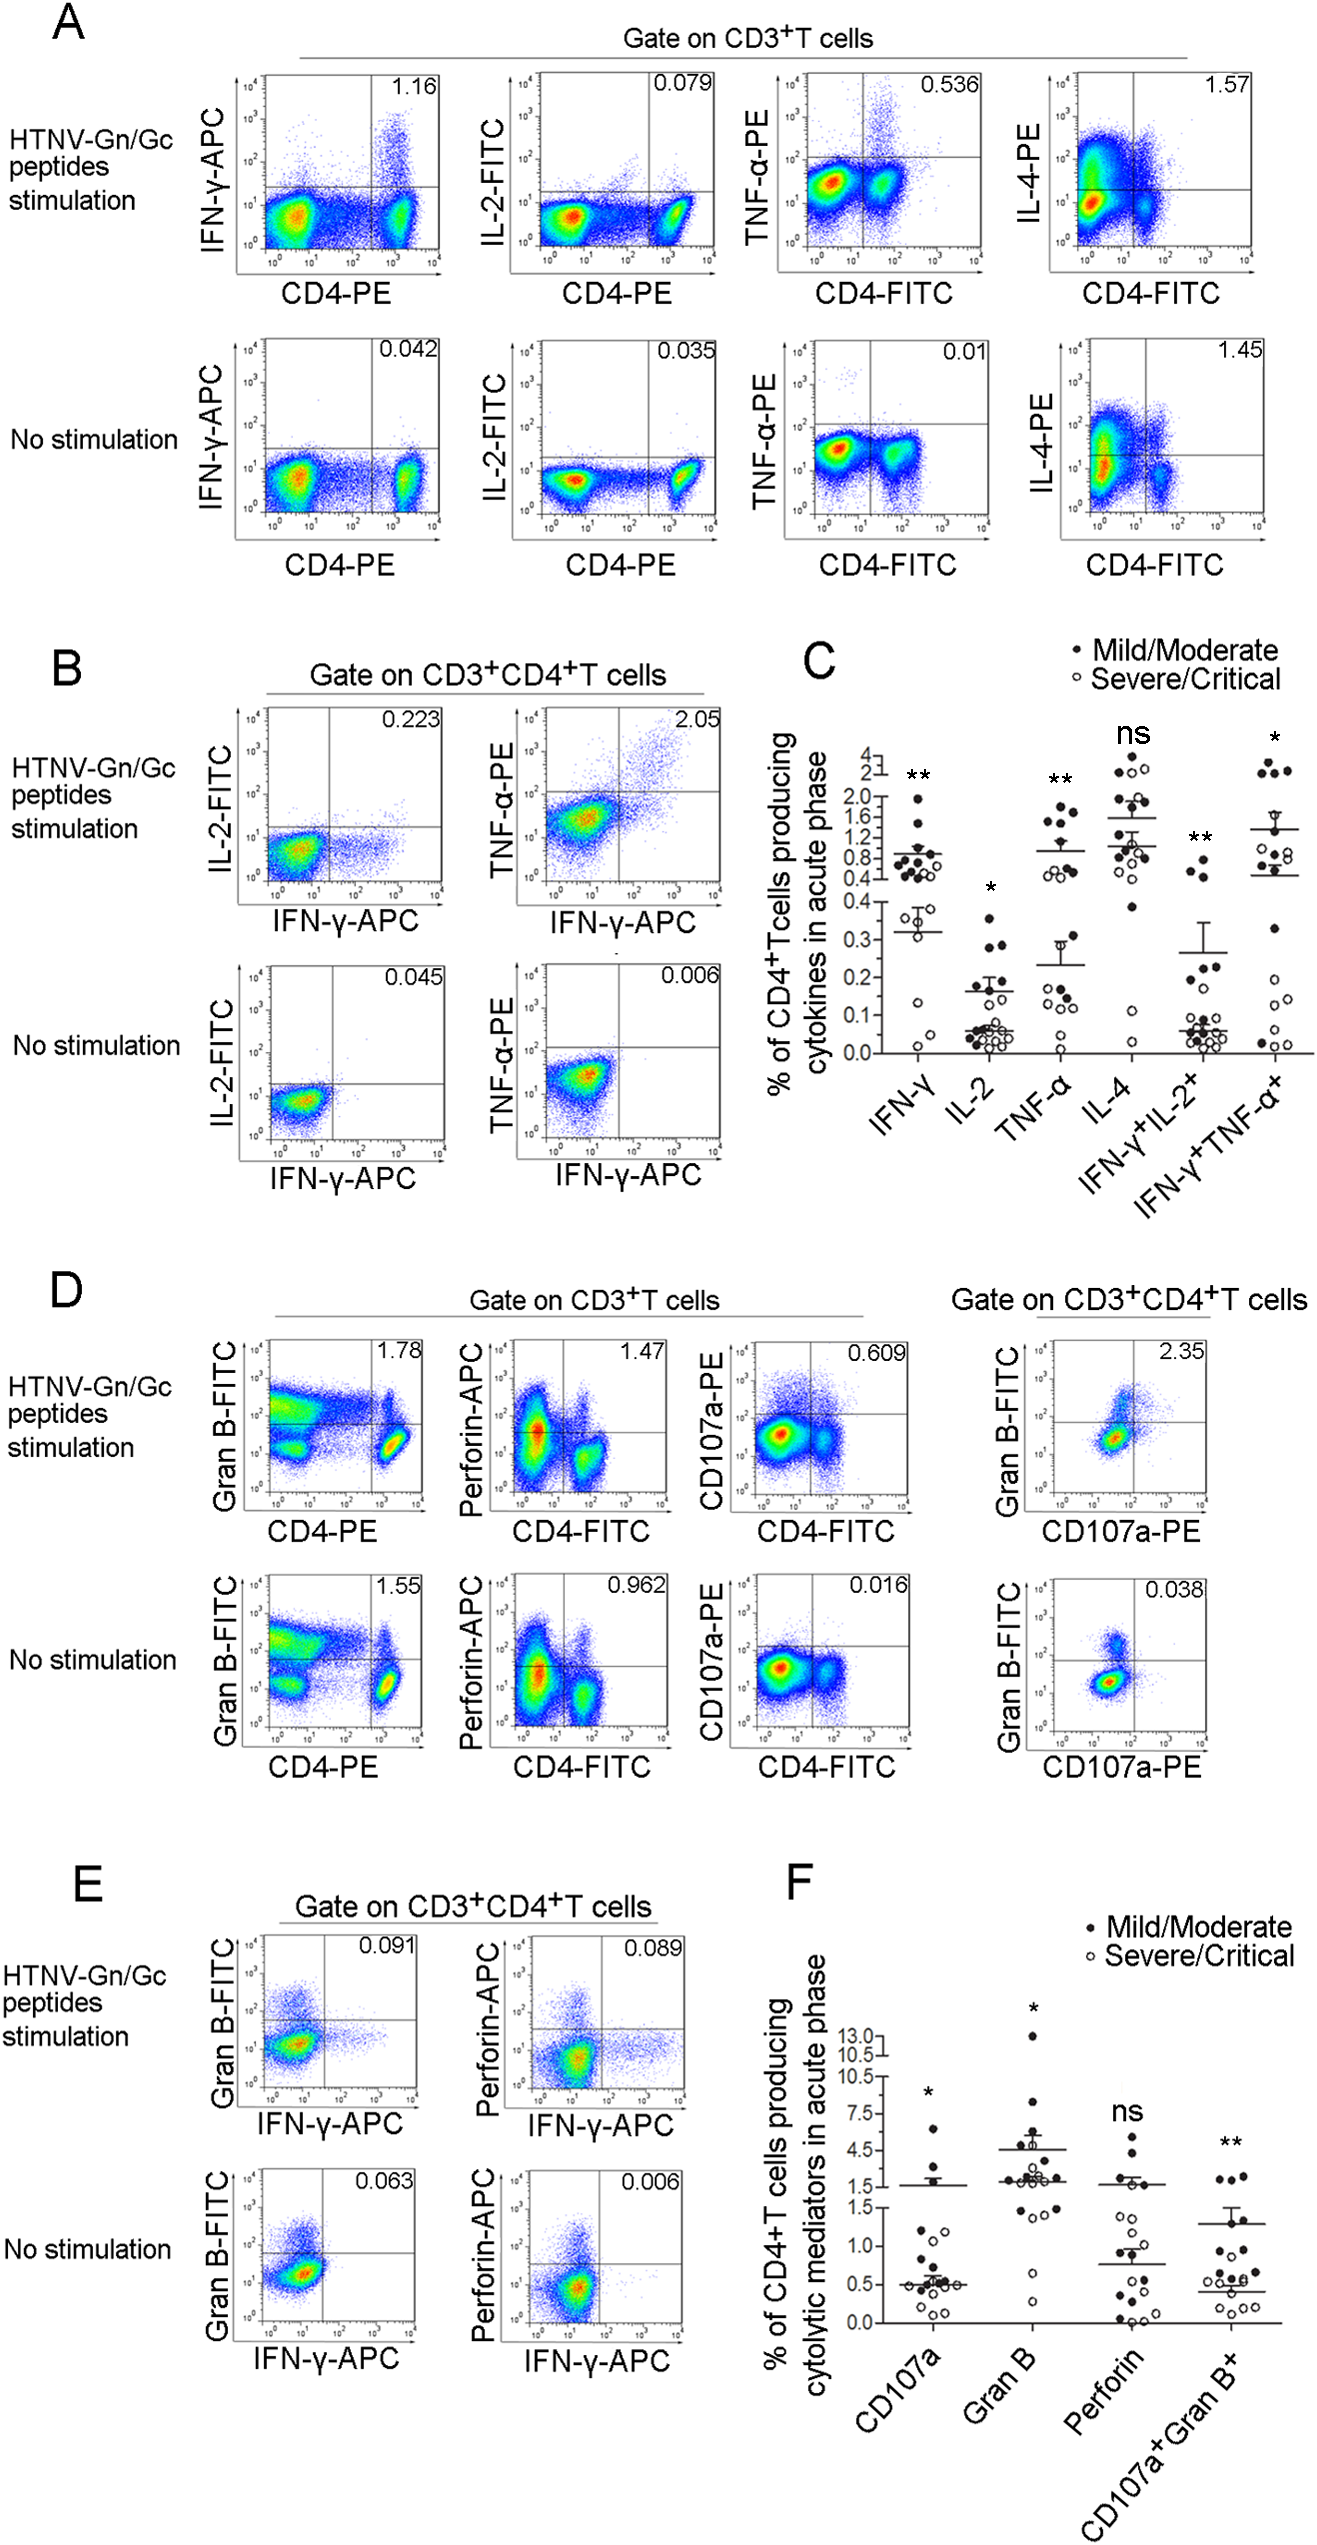 The polyfunctional pattern of cytokine production of HTNV-Gn/Gc-specific CD4<sup>+</sup>T cells.